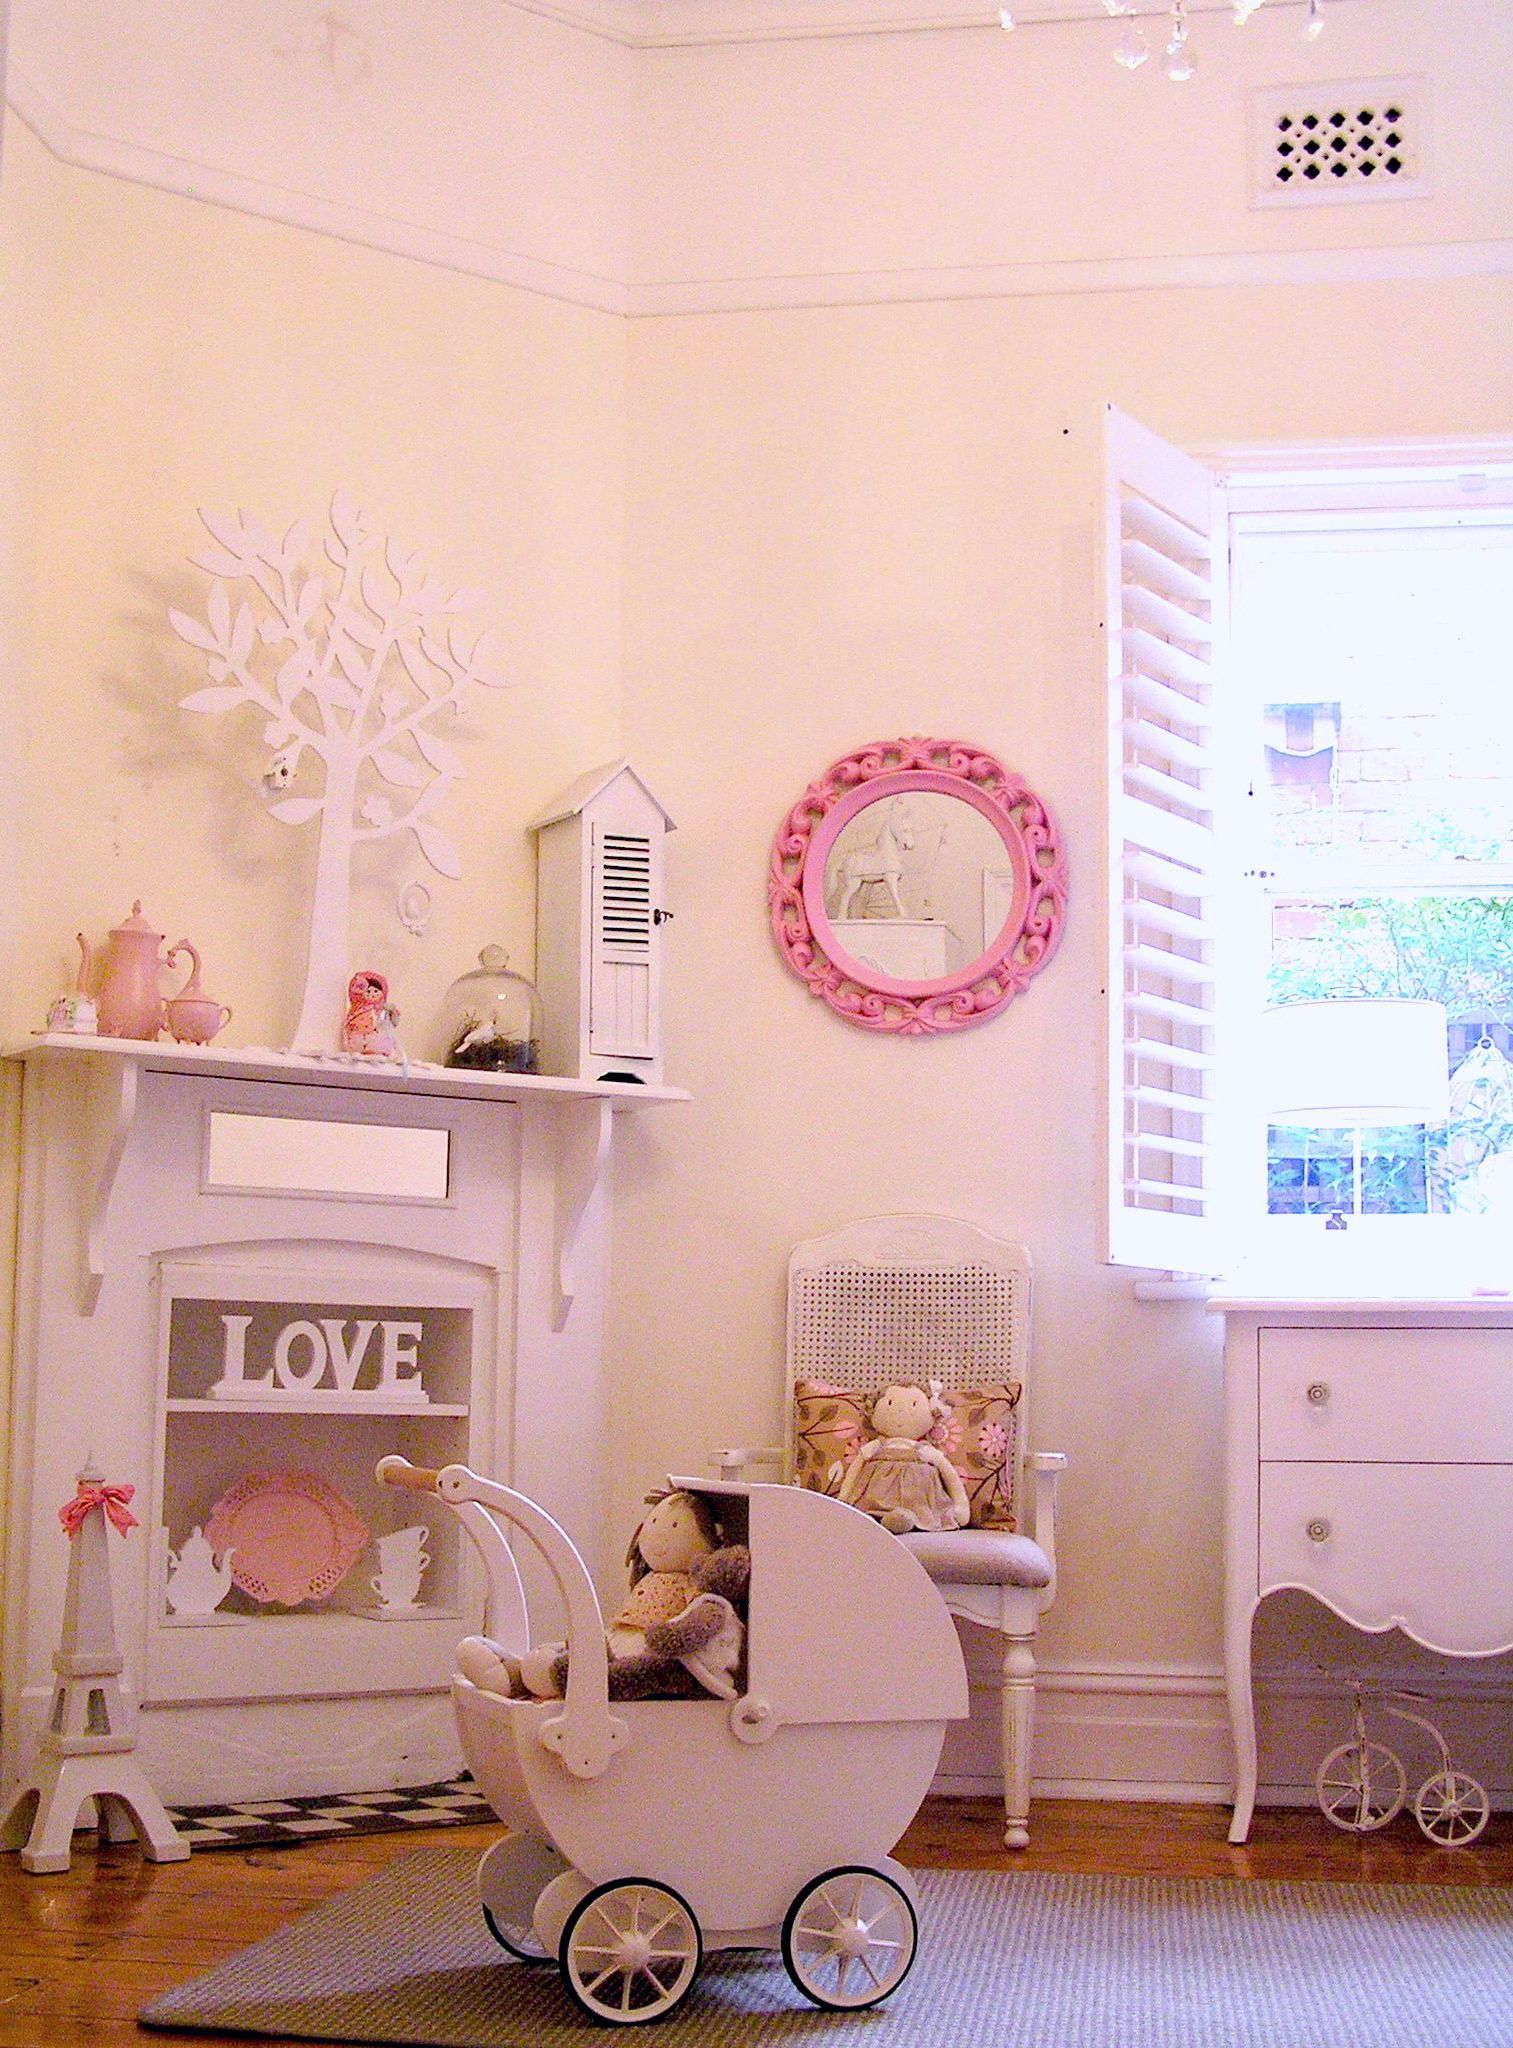 Girls Shabby Chic French Bedroom Room Vintage Pastel Pink Pram Shutters Firep Shabby Chic Girls Bedroom Shabby Chic Toddler Room Shabby Chic Furniture Painting